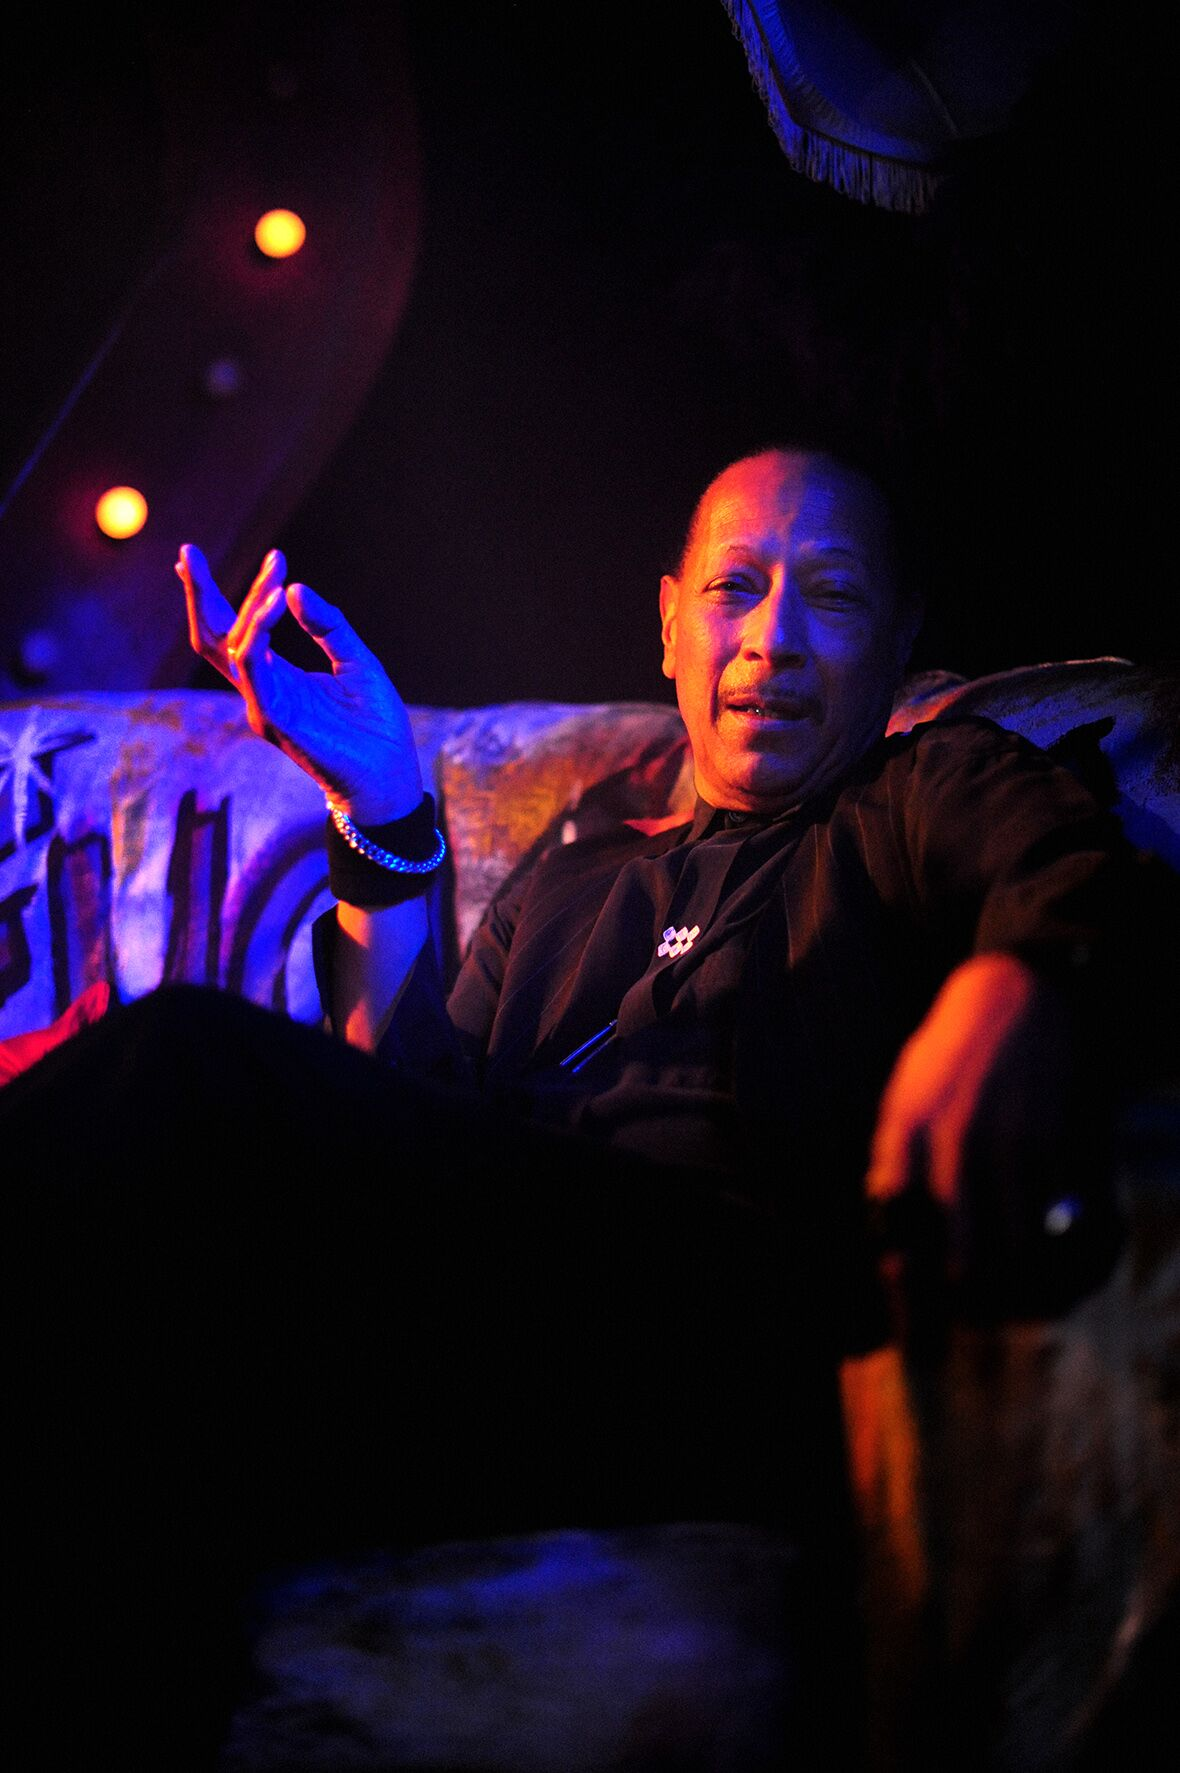 Singer Peter Straker sitting under blue lights